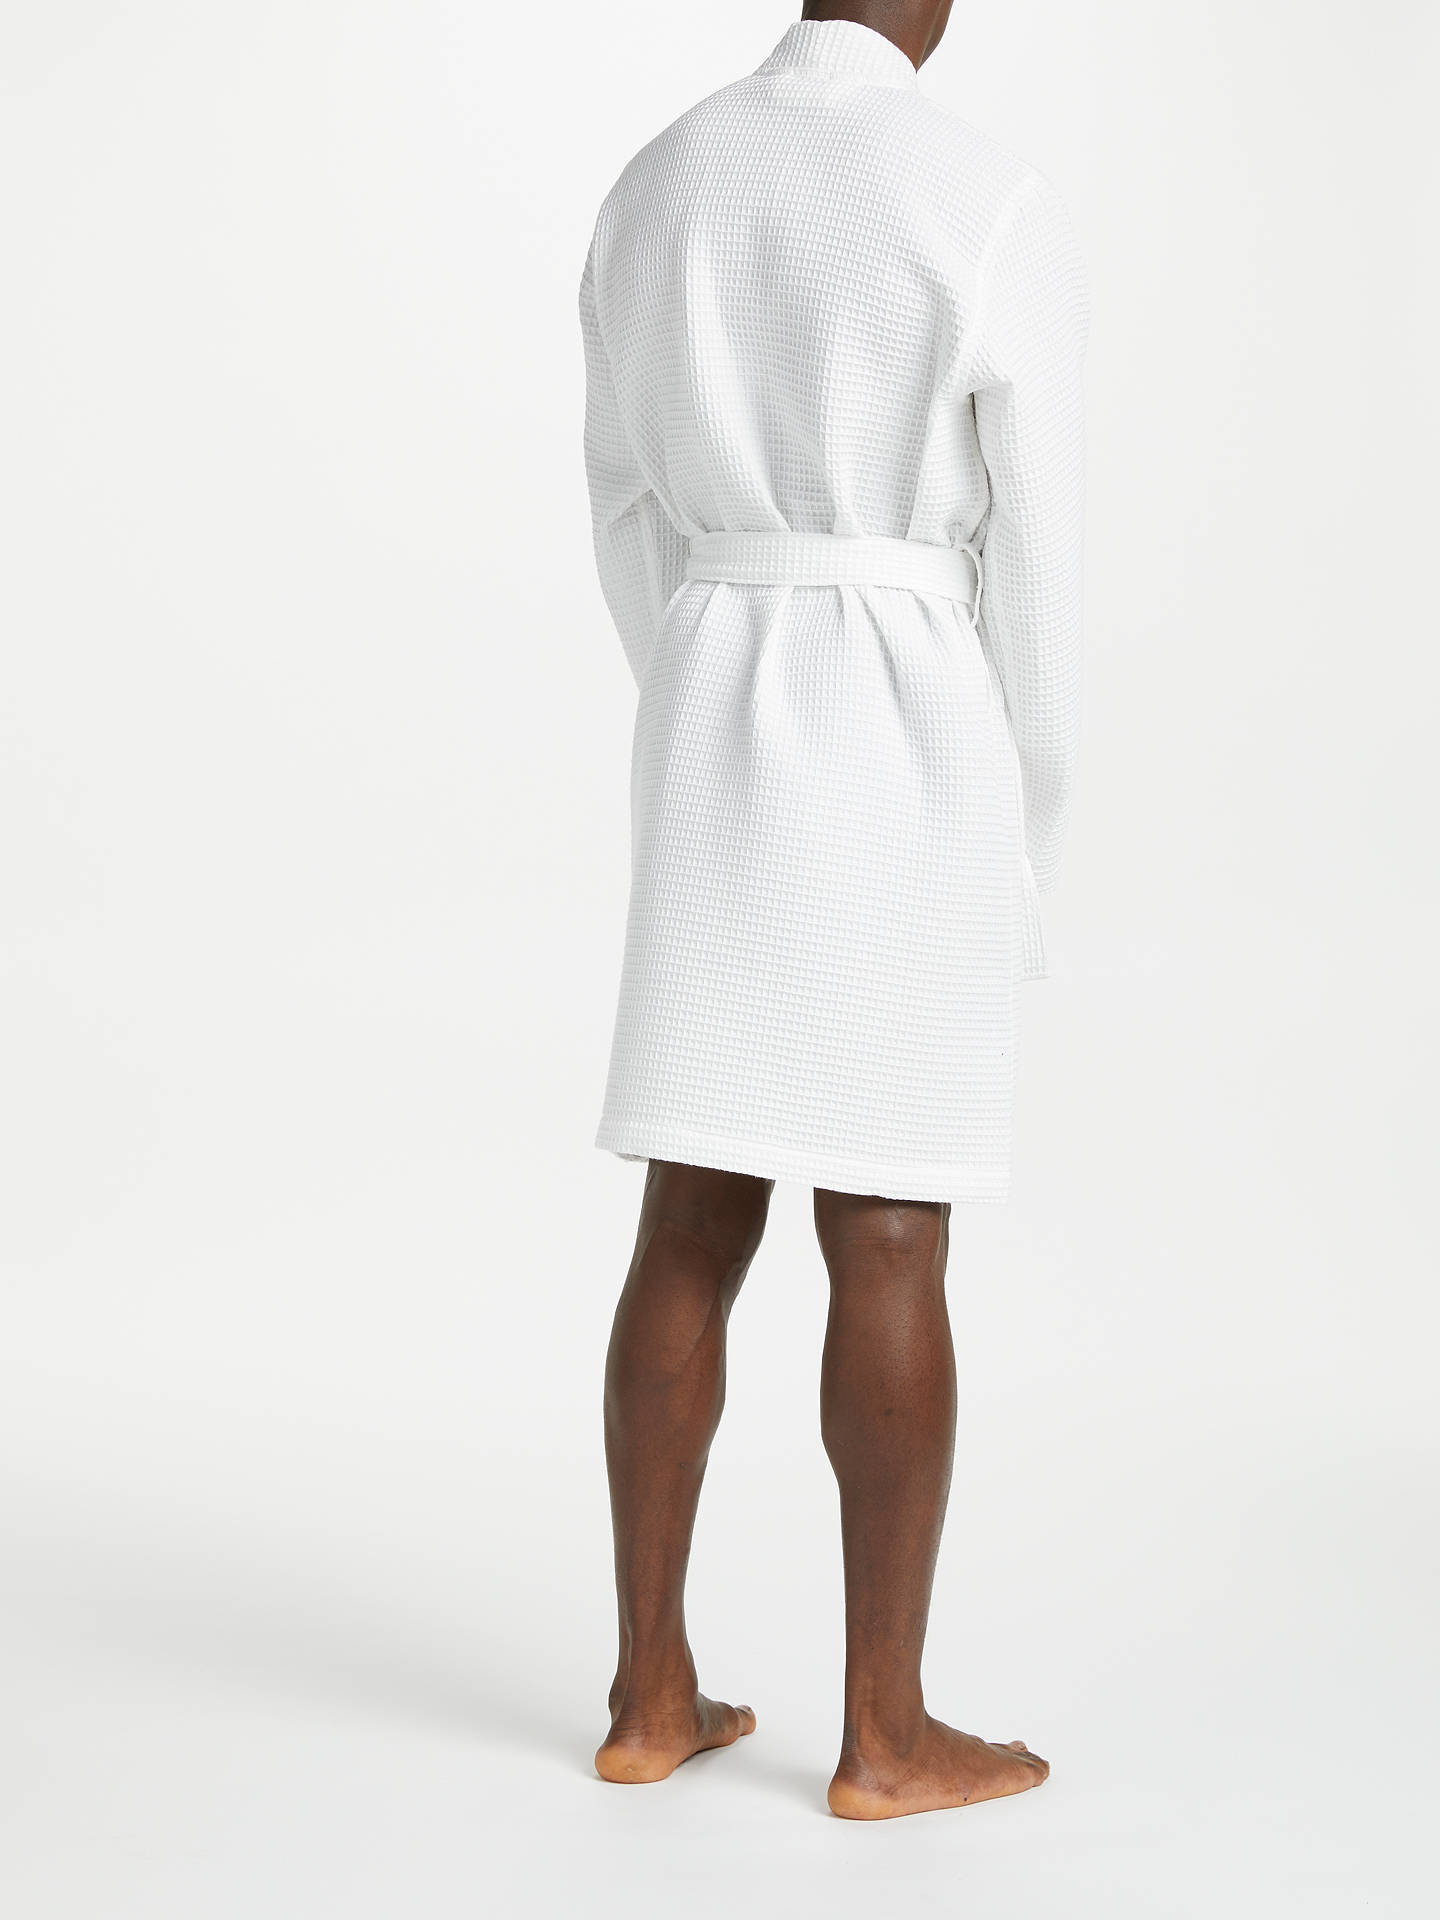 performance sportswear choose authentic price Polo Ralph Lauren Waffle Robe, White at John Lewis & Partners